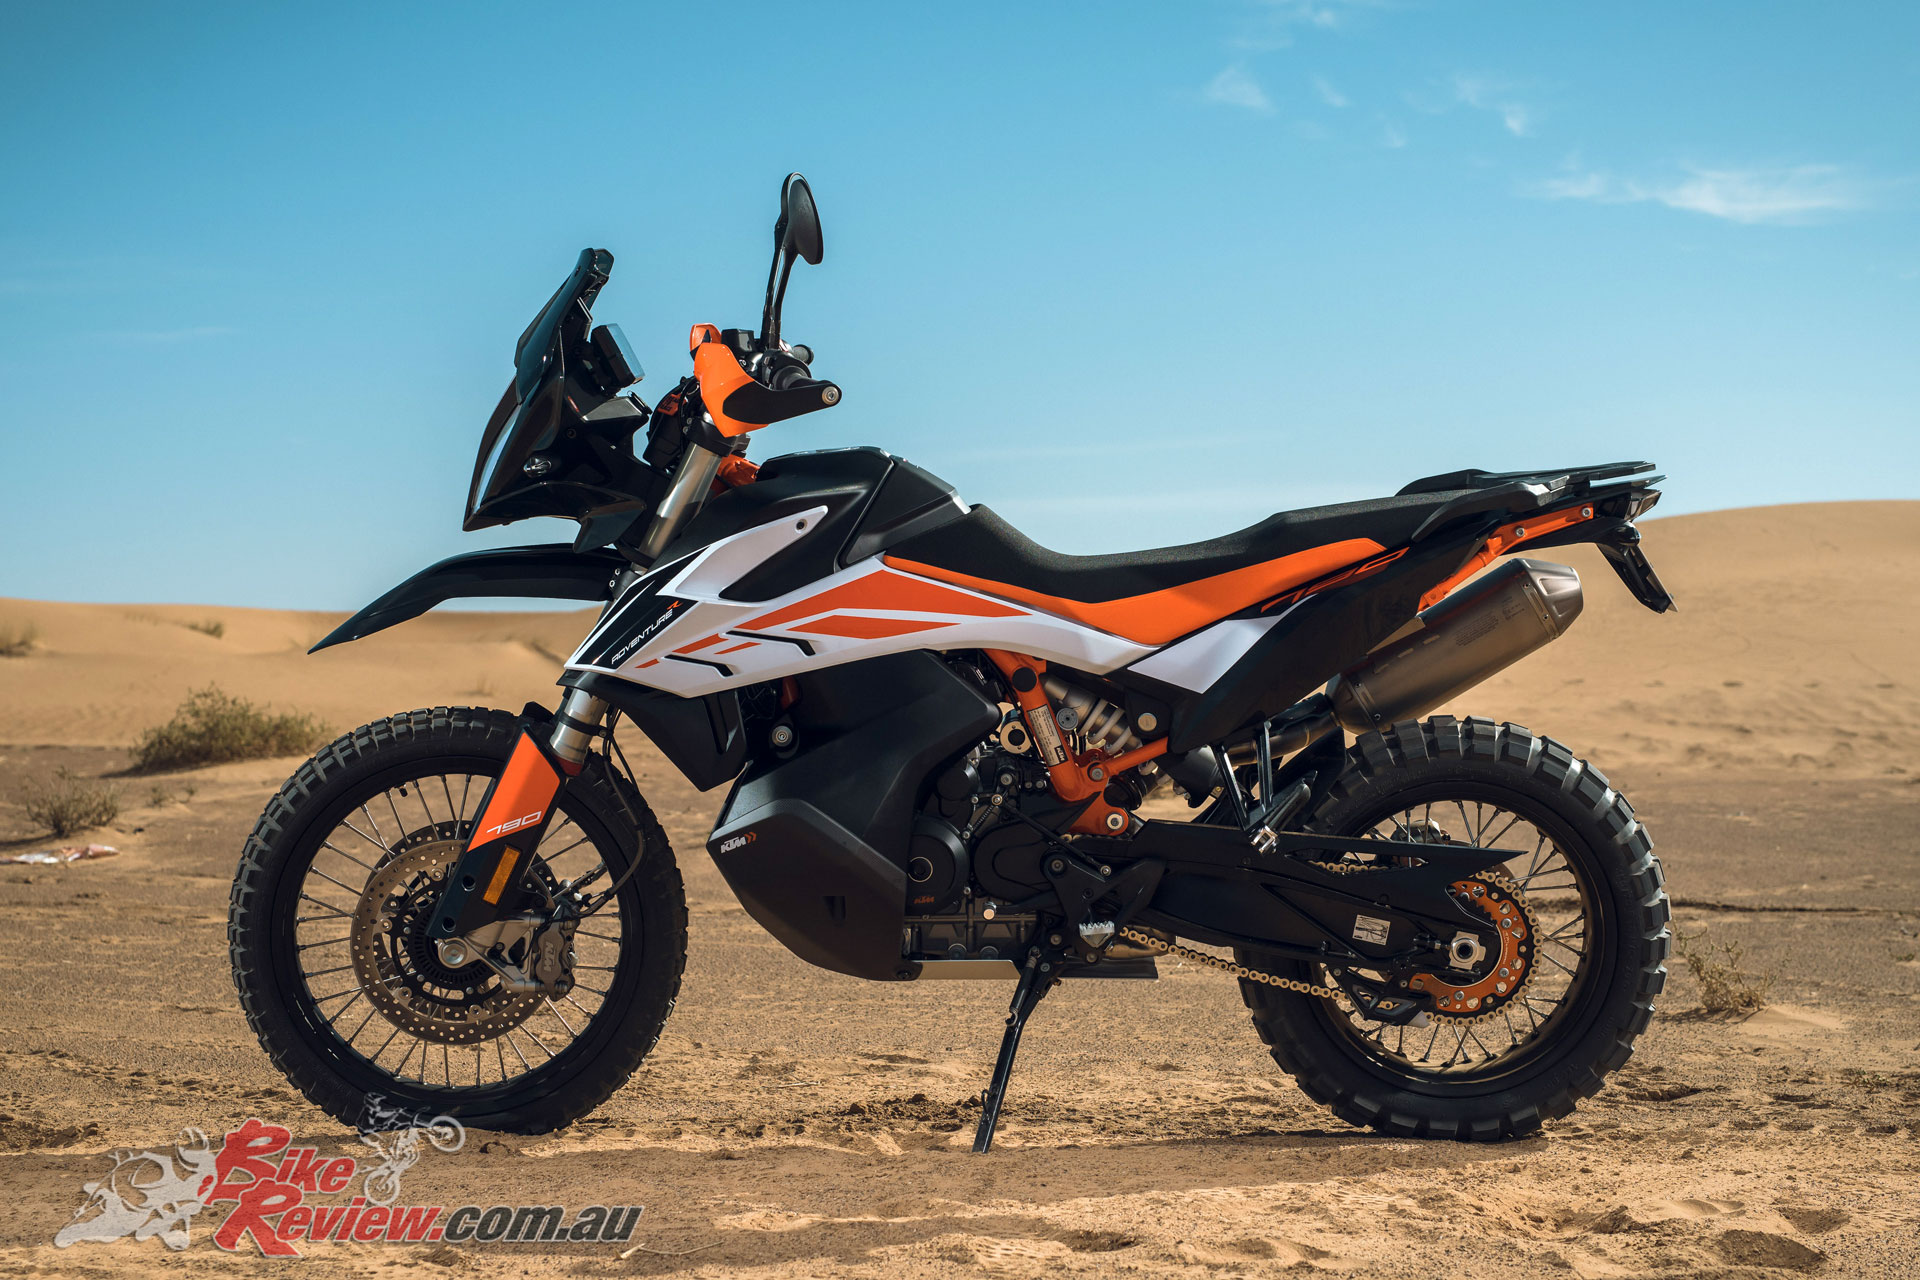 The 790 Adventure R also stands out for longer suspension travel, and the ensuing taller seat height